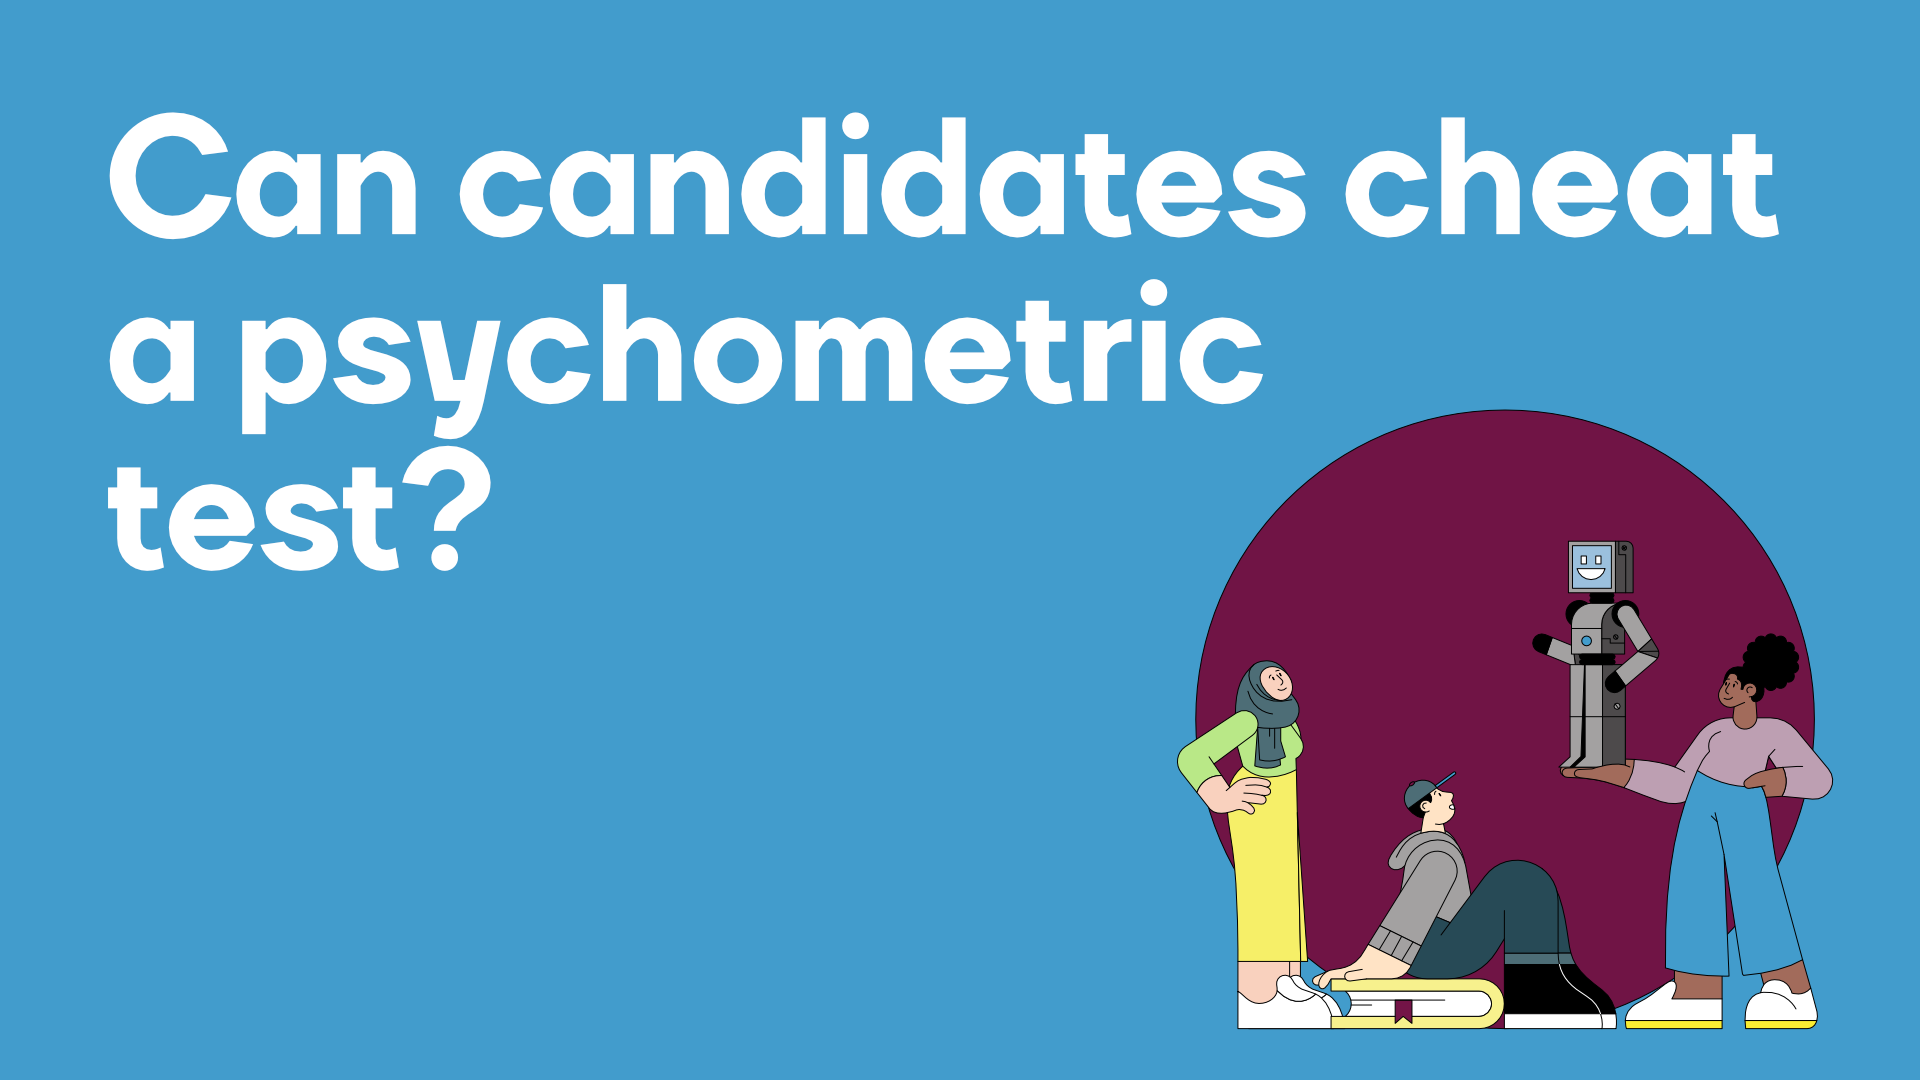 Can you cheat a psychometric test